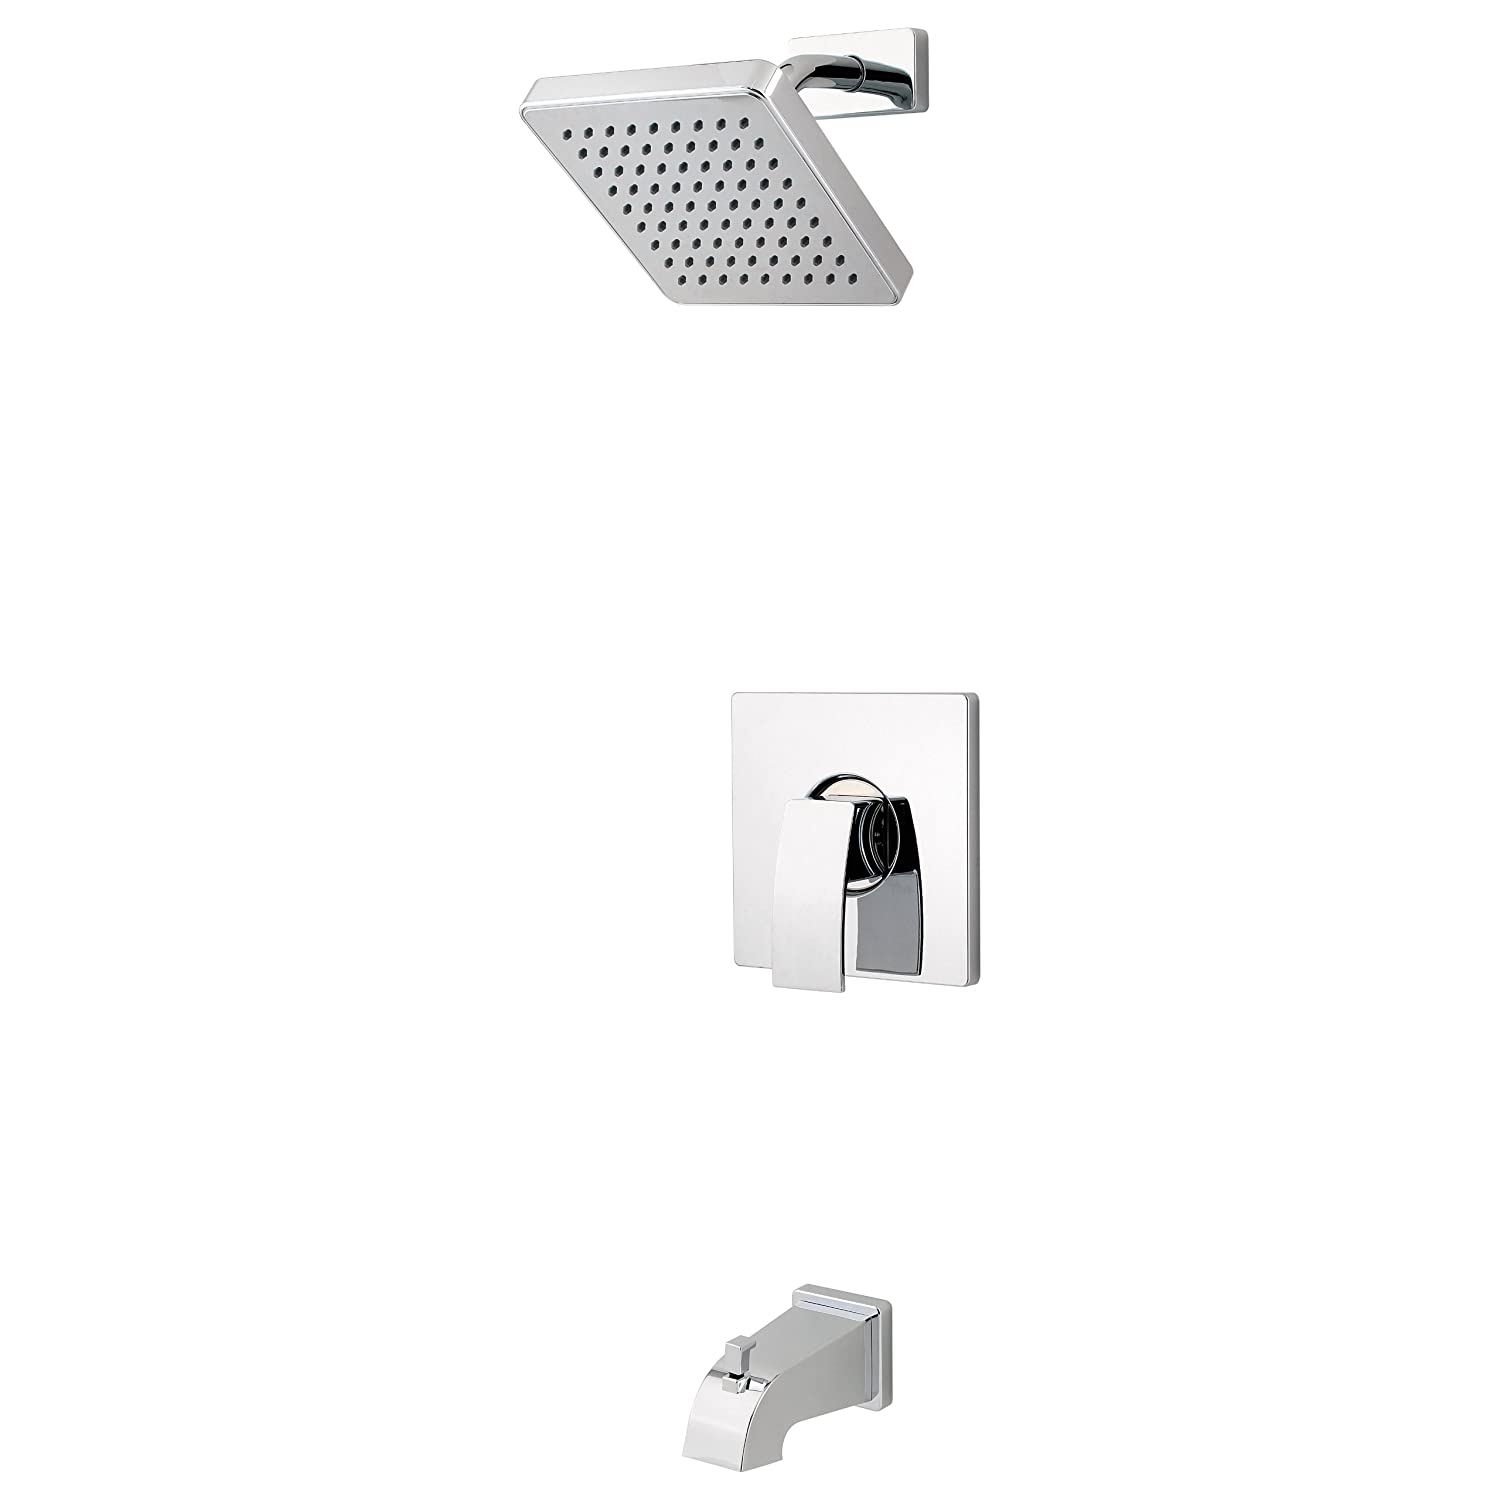 Pfister G898DFB Kenzo 1 Handle Tub and Shower Trim in Black     Amazon comPfister G898DFB Kenzo 1 Handle Tub and Shower Trim in Black  . Black Shower Head And Faucet. Home Design Ideas